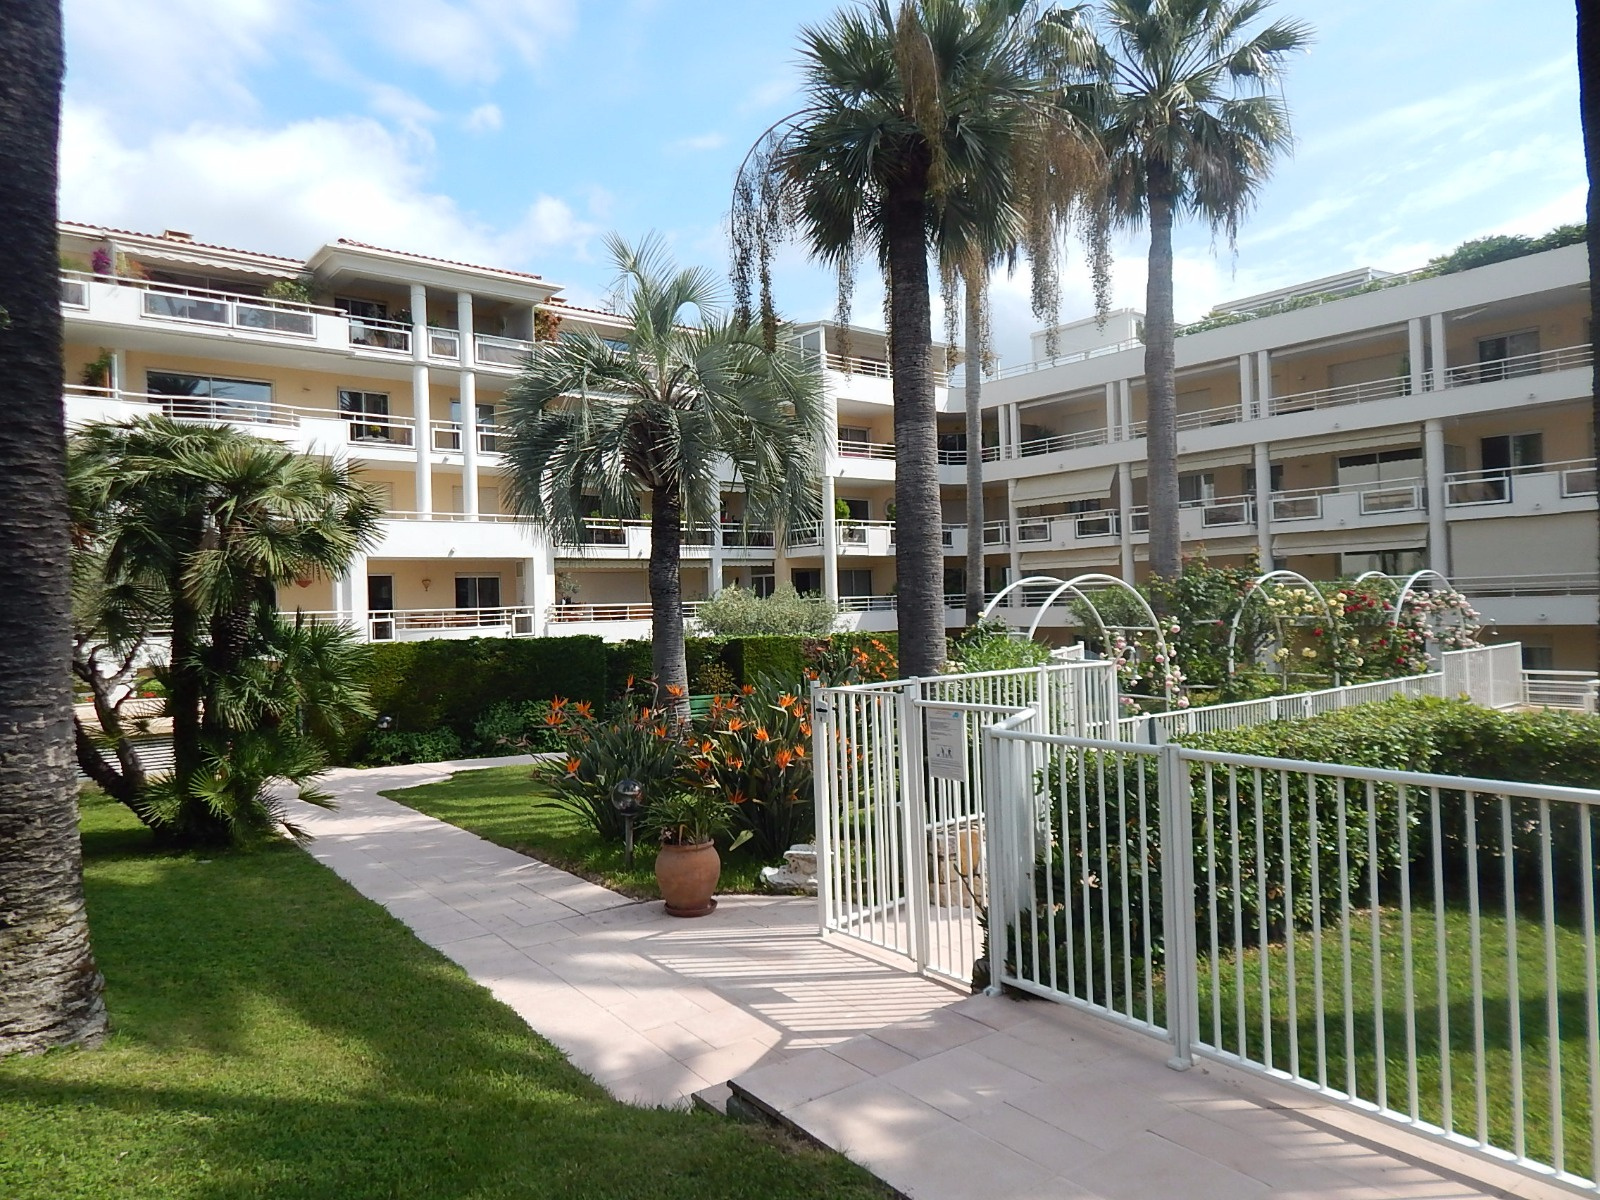 Agence immo 06 immobilier cannes et environ vente for Ca location immobilier